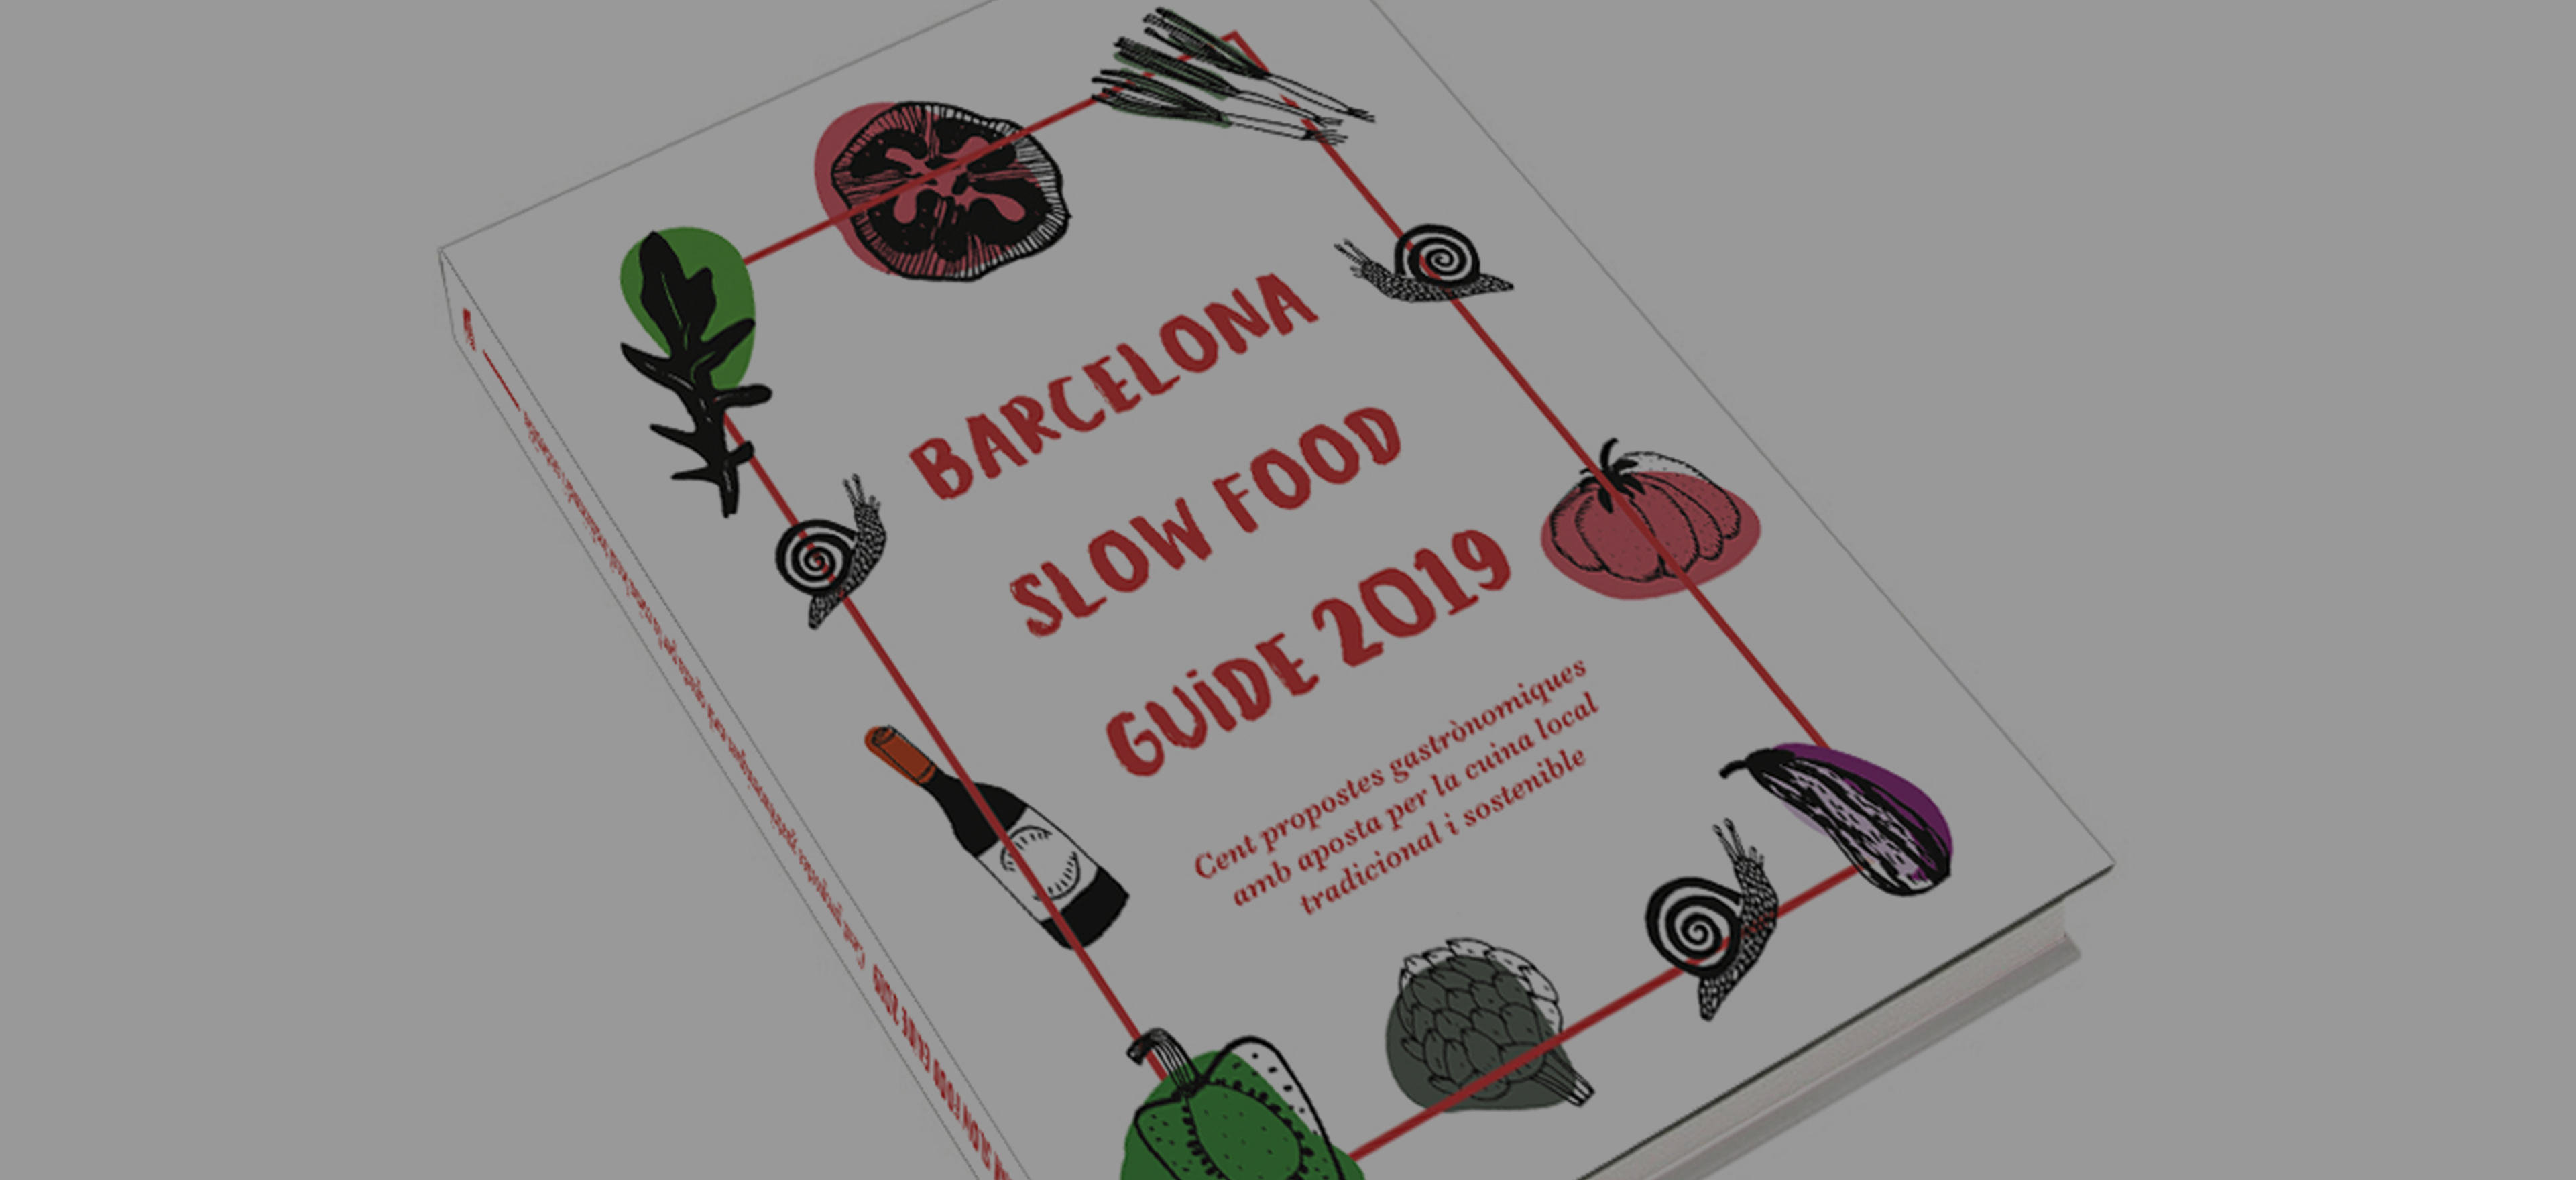 Compra la Barcelona Slow Food Guide